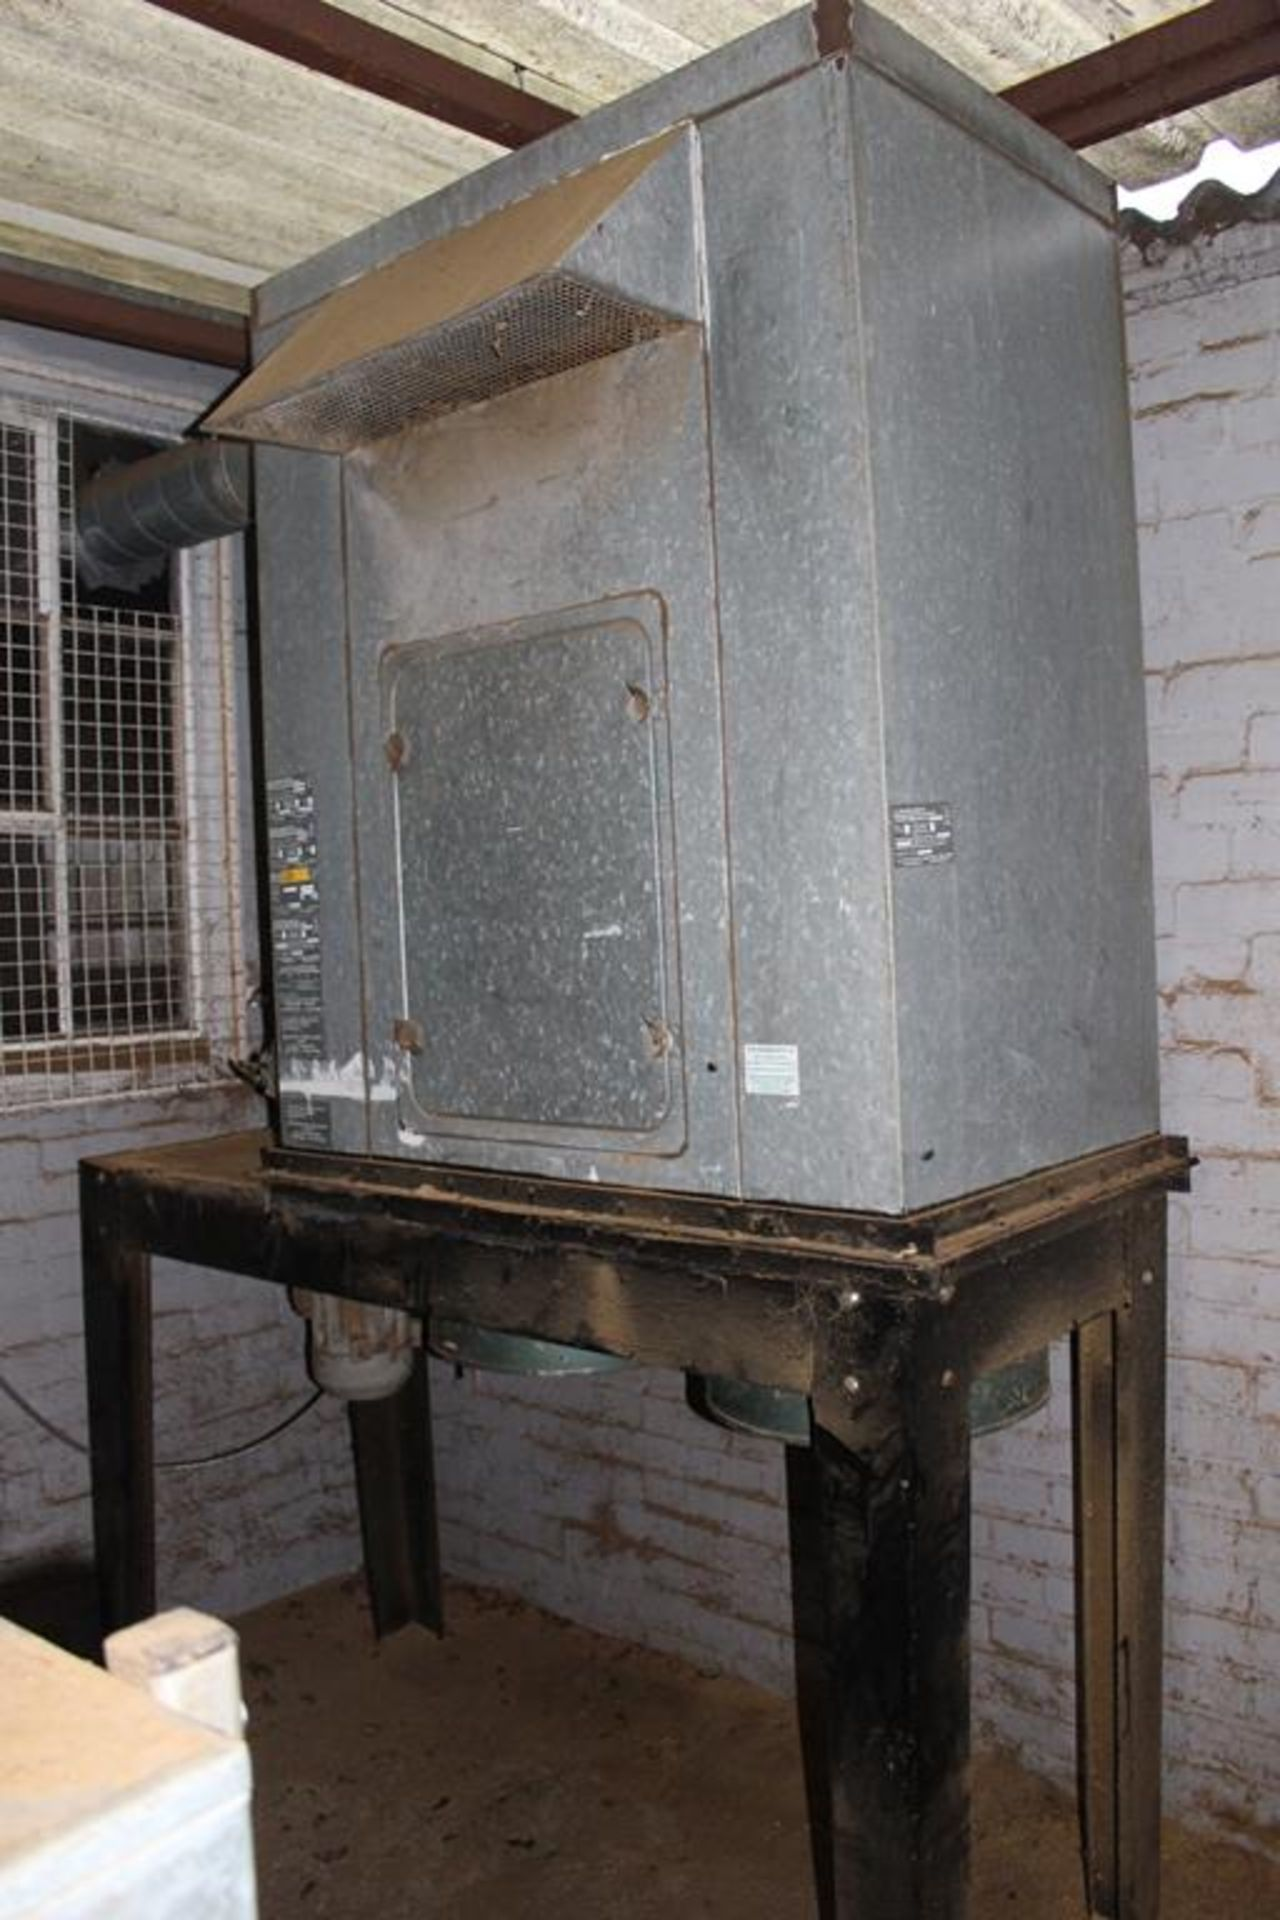 Lot 67 - * 2 Bag Dust Extraction Cabinet A 3 phase 2 Bag Dust Extraction Cabinet on Stand. Please note this